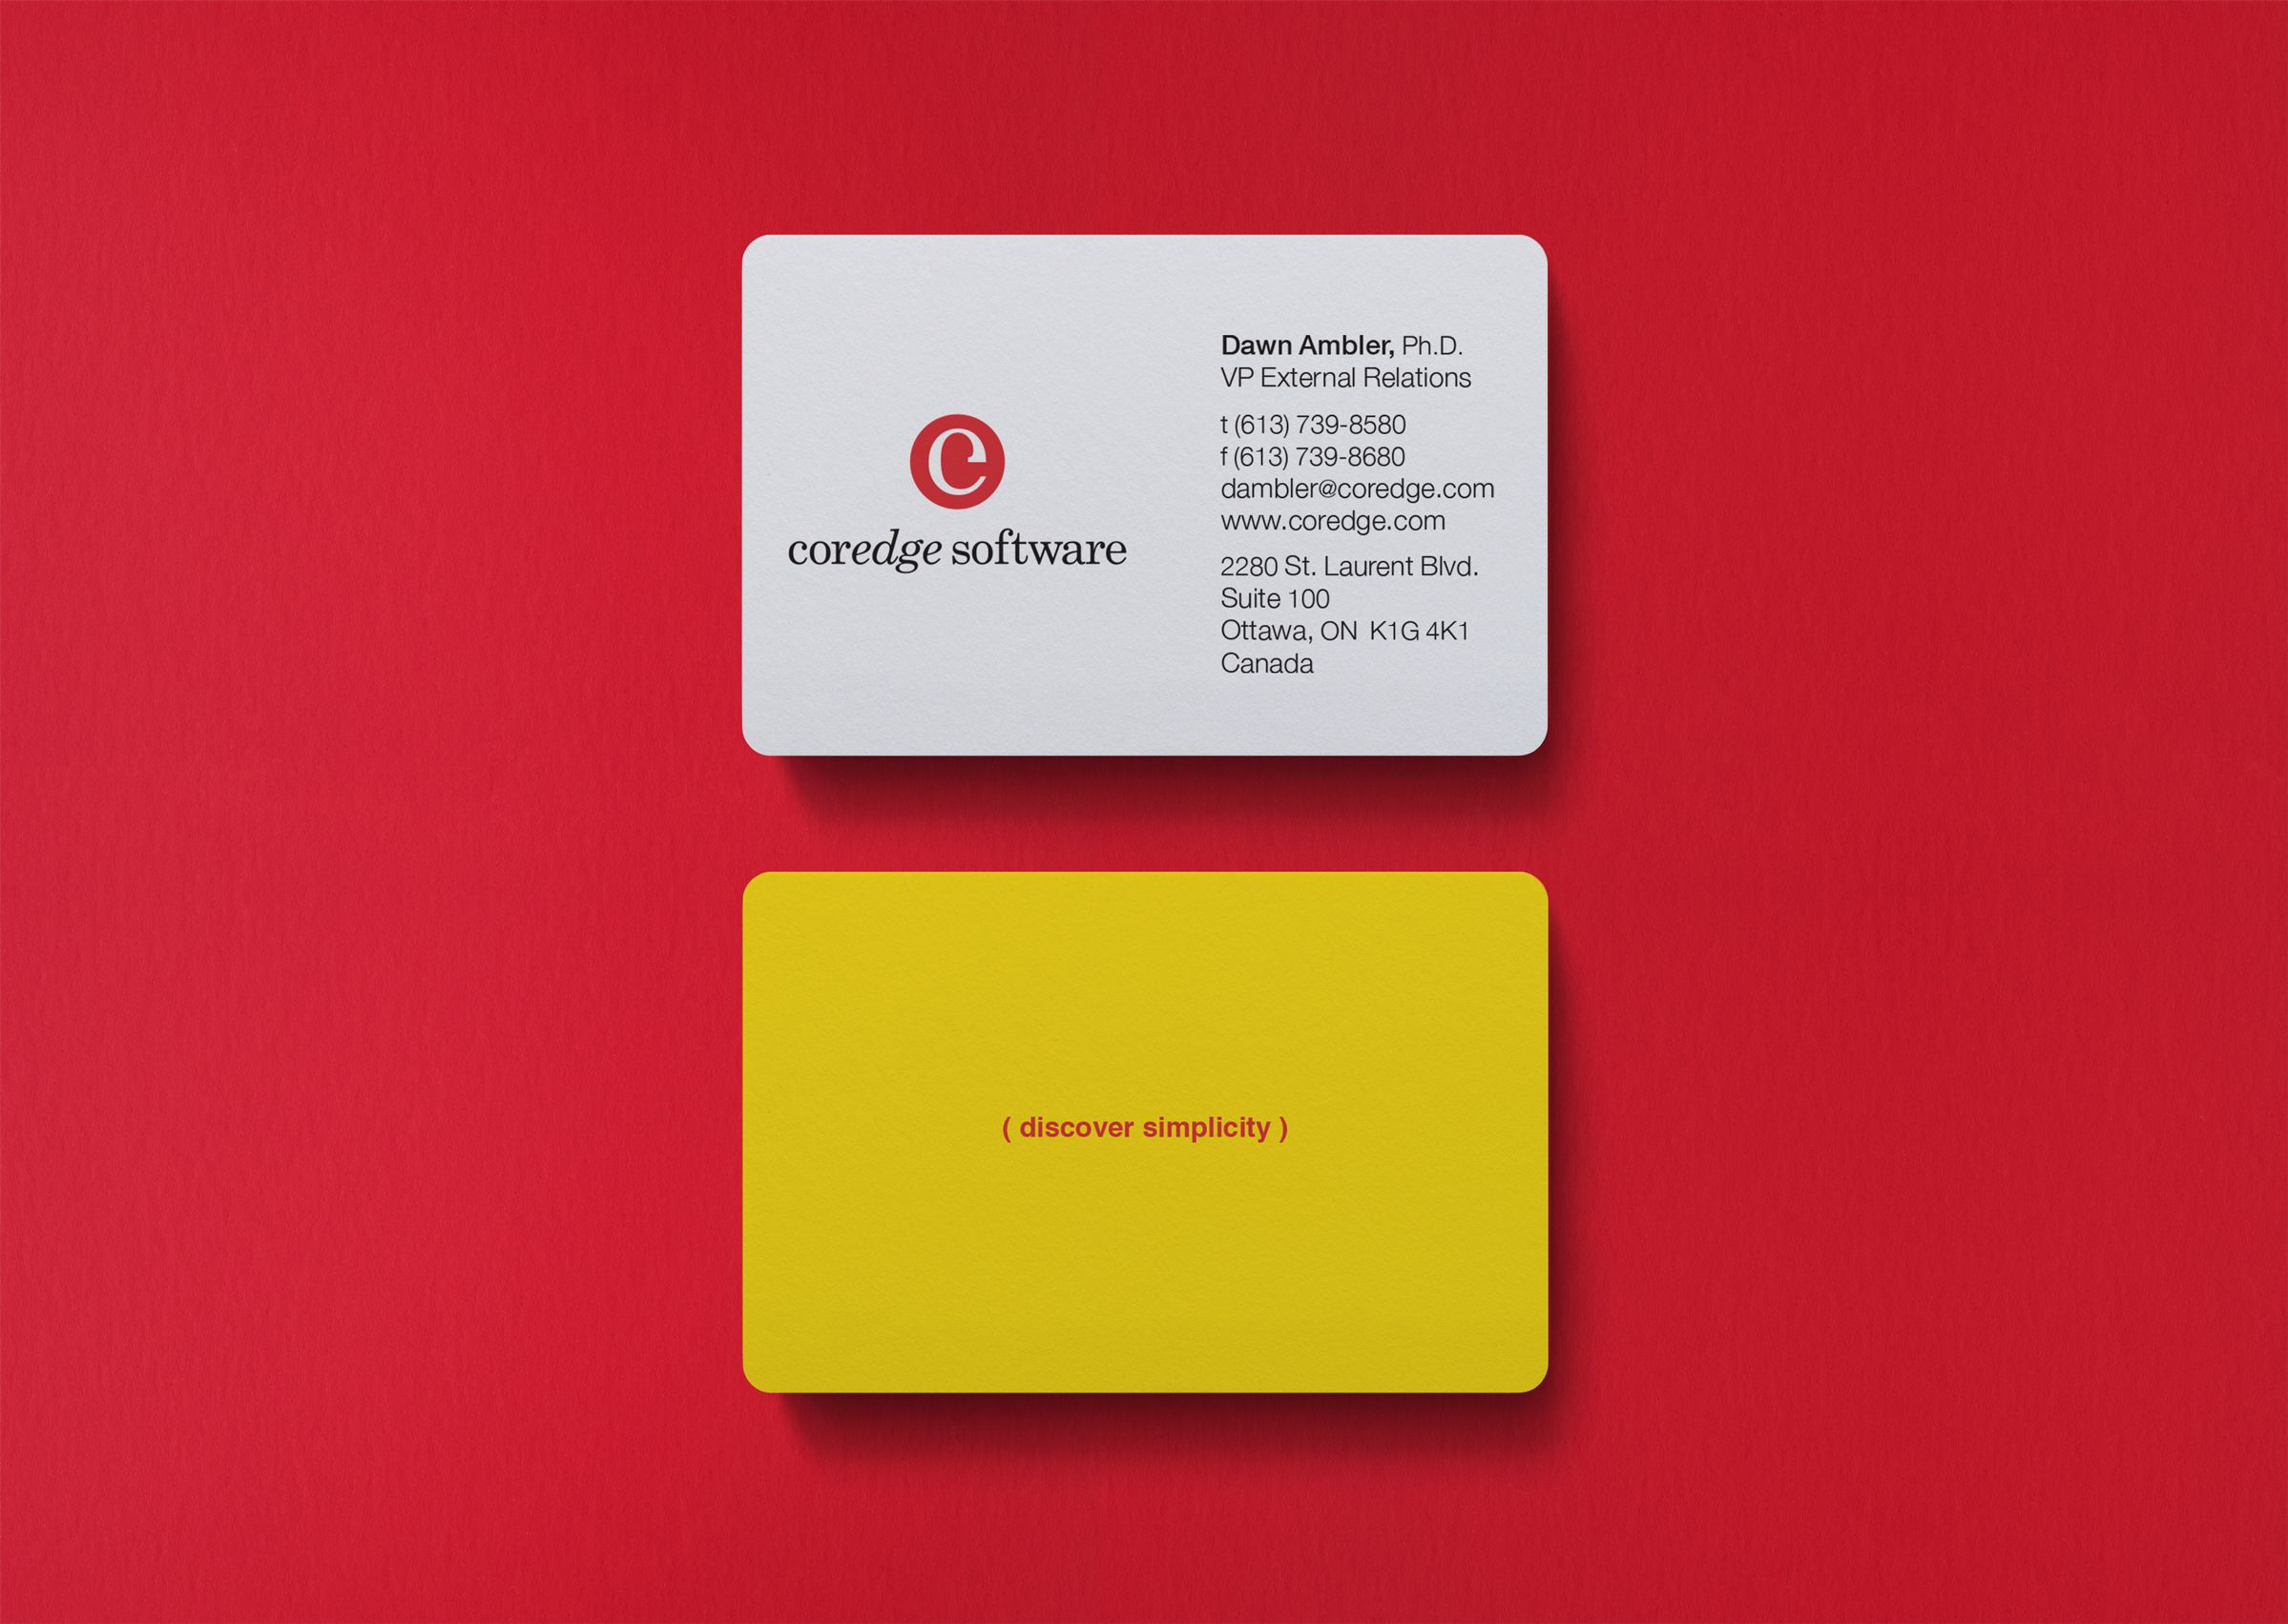 Coredge Software Business Card by Ottawa Graphic Designer idApostle